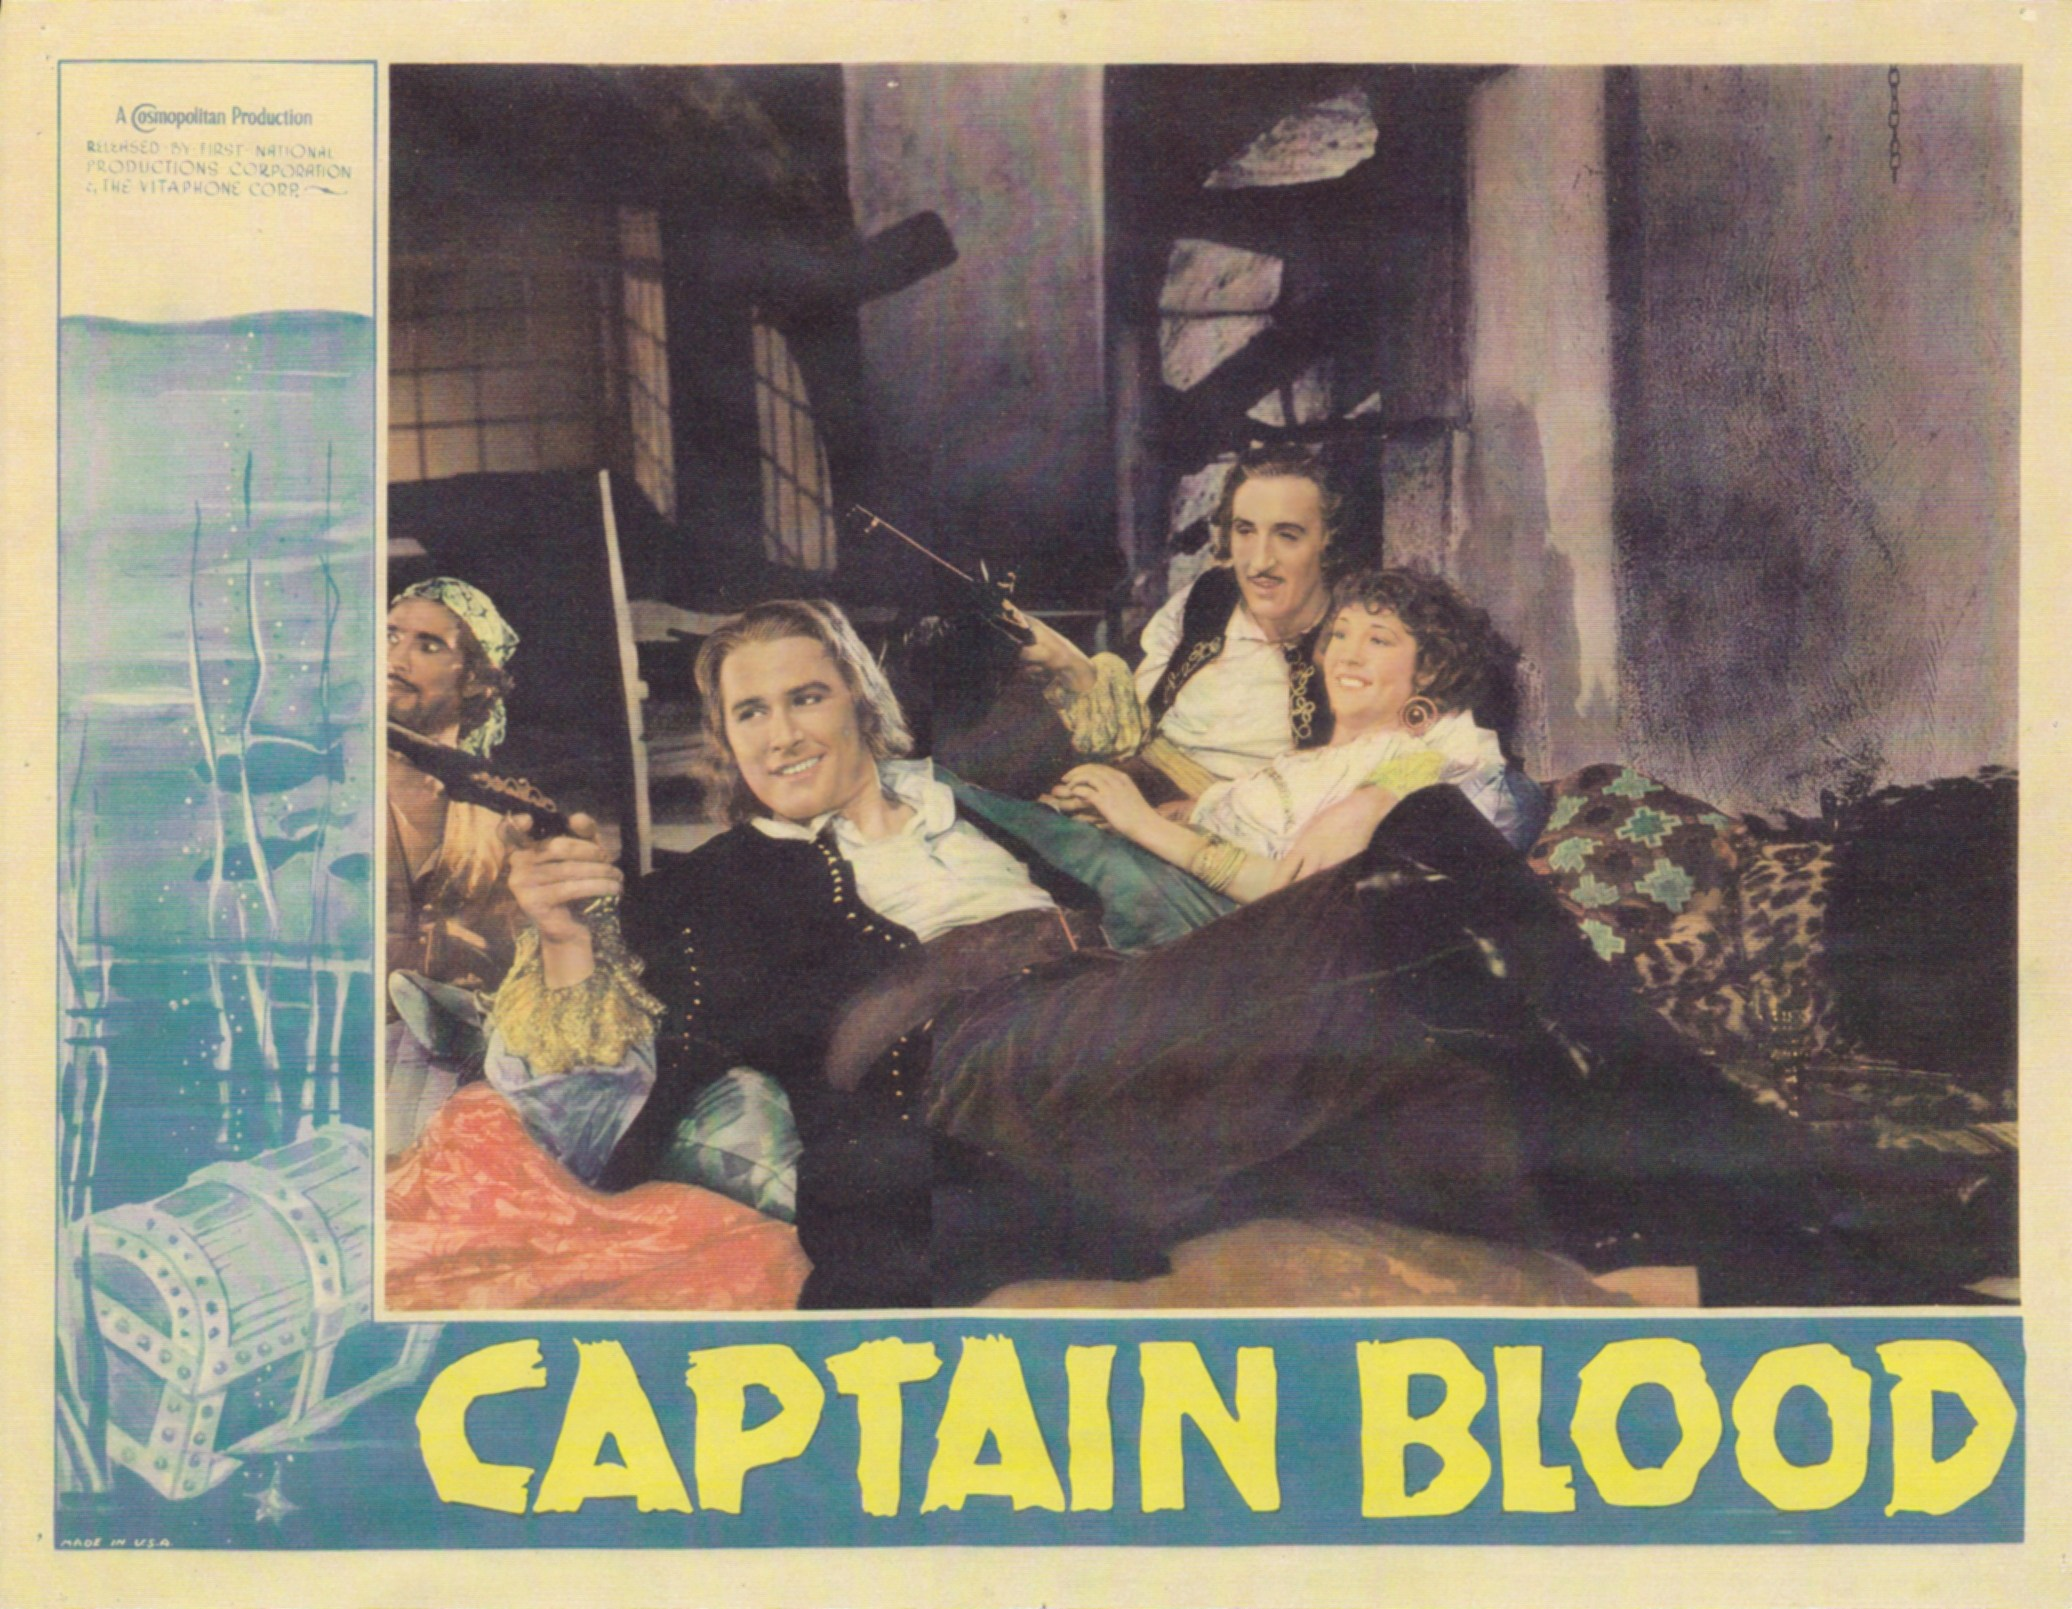 Basil Rathbone, Master of Stage and Screen: Captain Blood